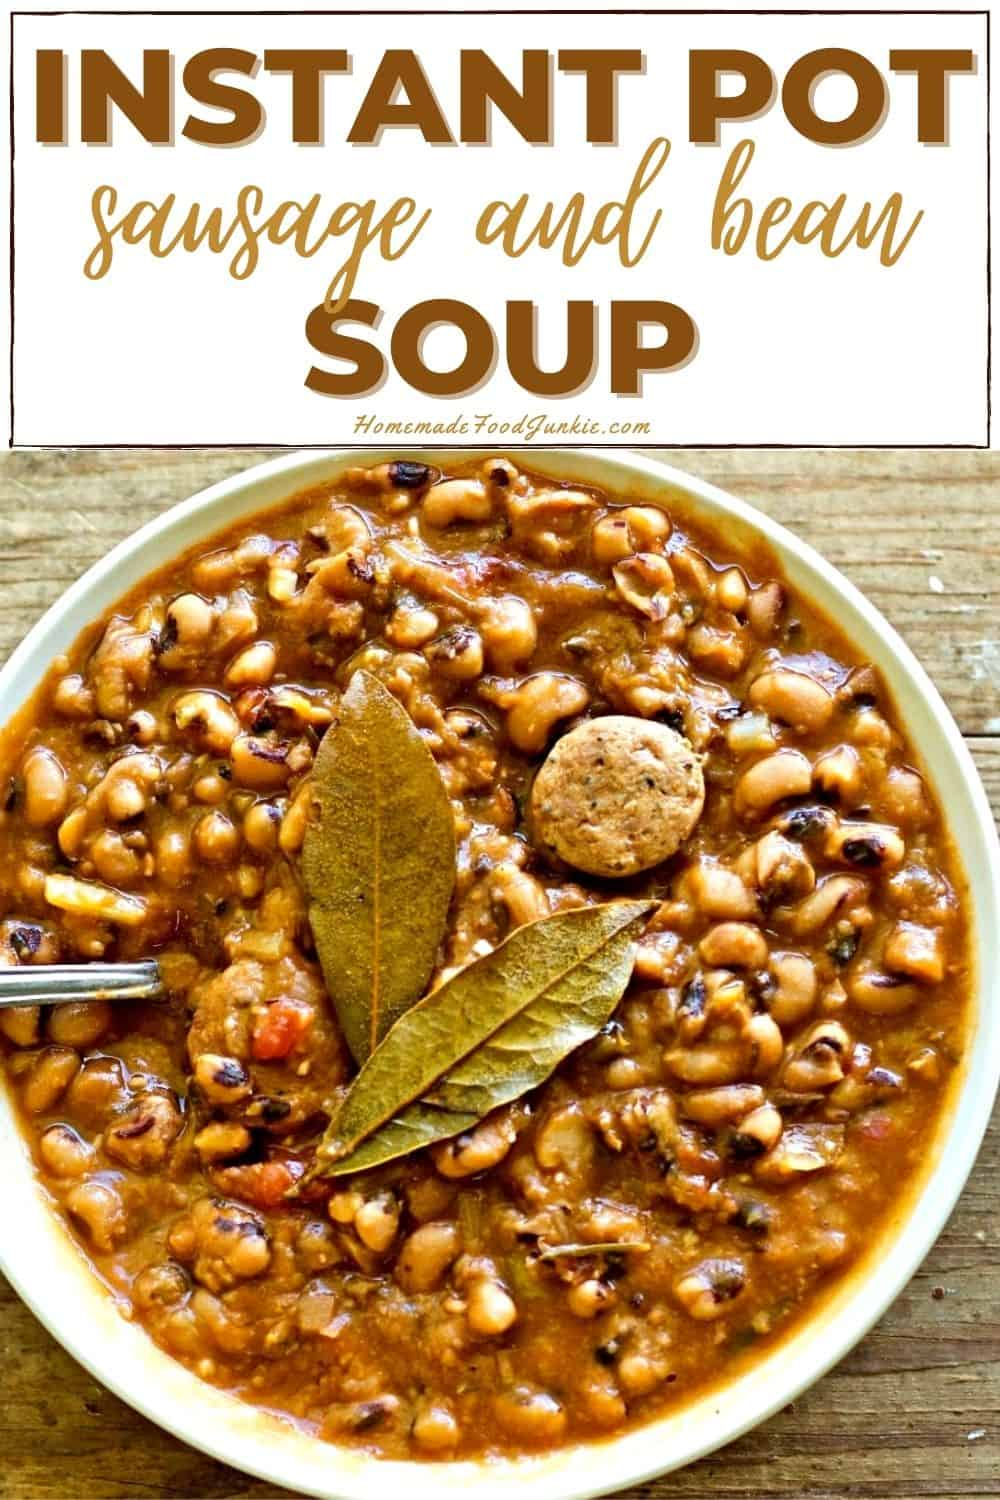 Instant pot sausage and bean soup-pin image